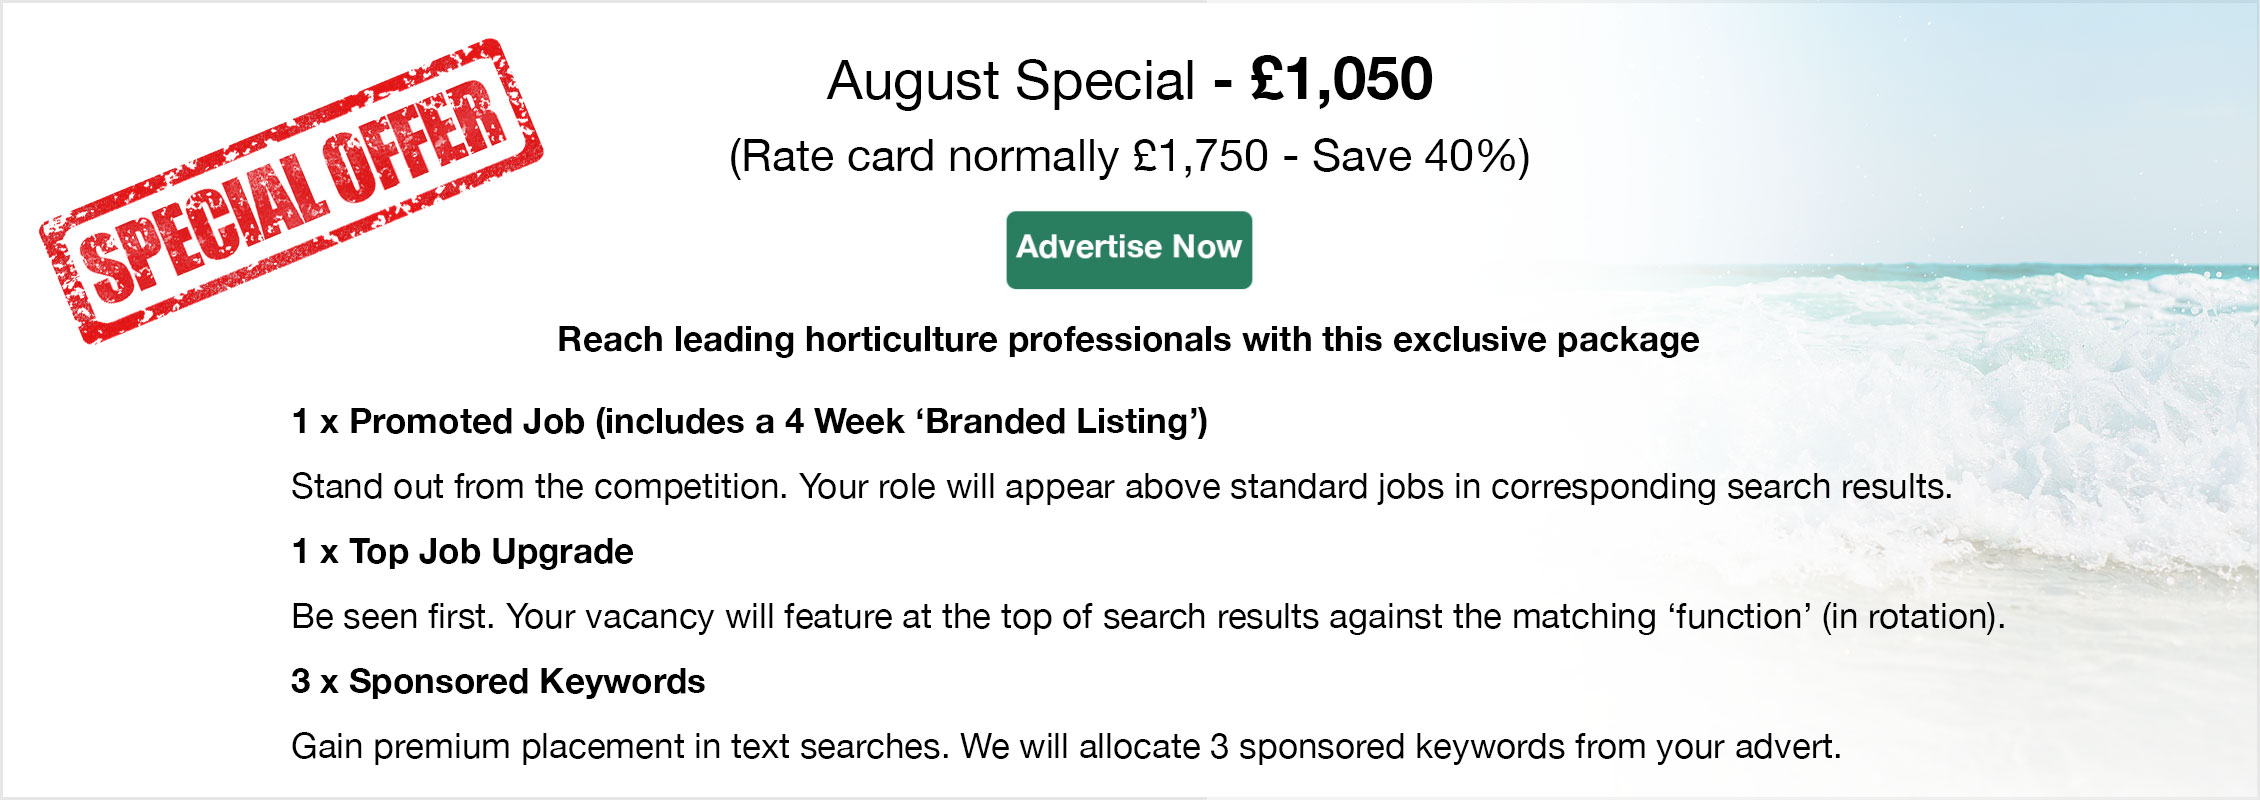 Special Offer. August Special - £995 (Rate card normally £1,660 - Save 40%). Advertise Now. Reach leading horticulture professionals with this exclusive package. 